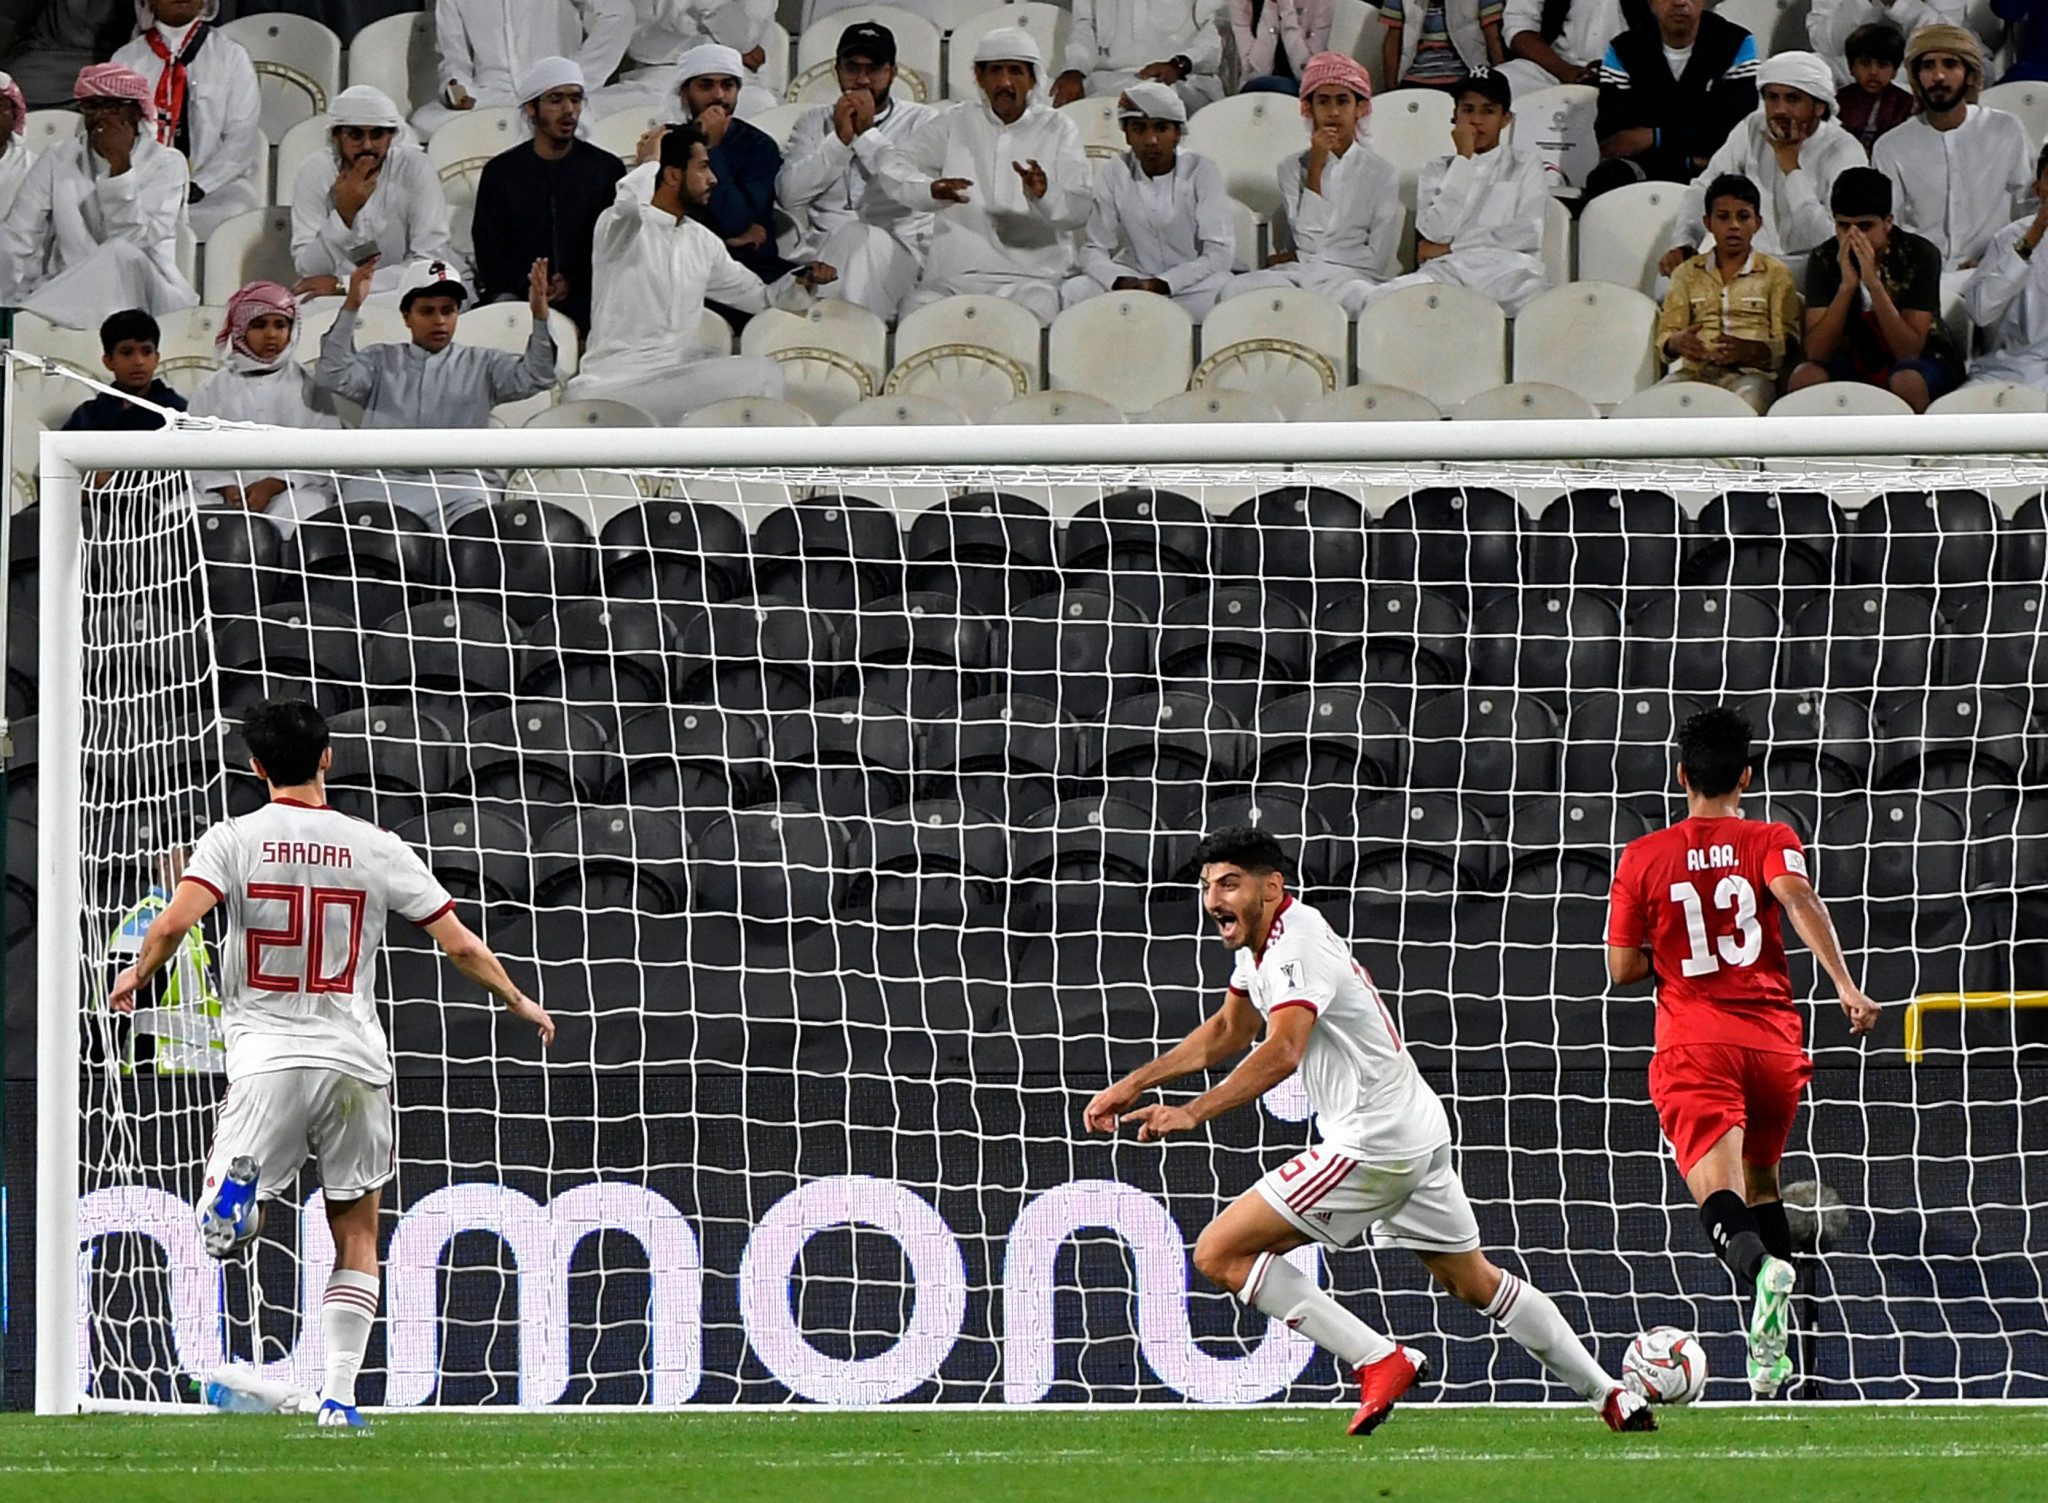 Iran cruised to a 5-0 victory over Yemen in Group D ©Getty Images